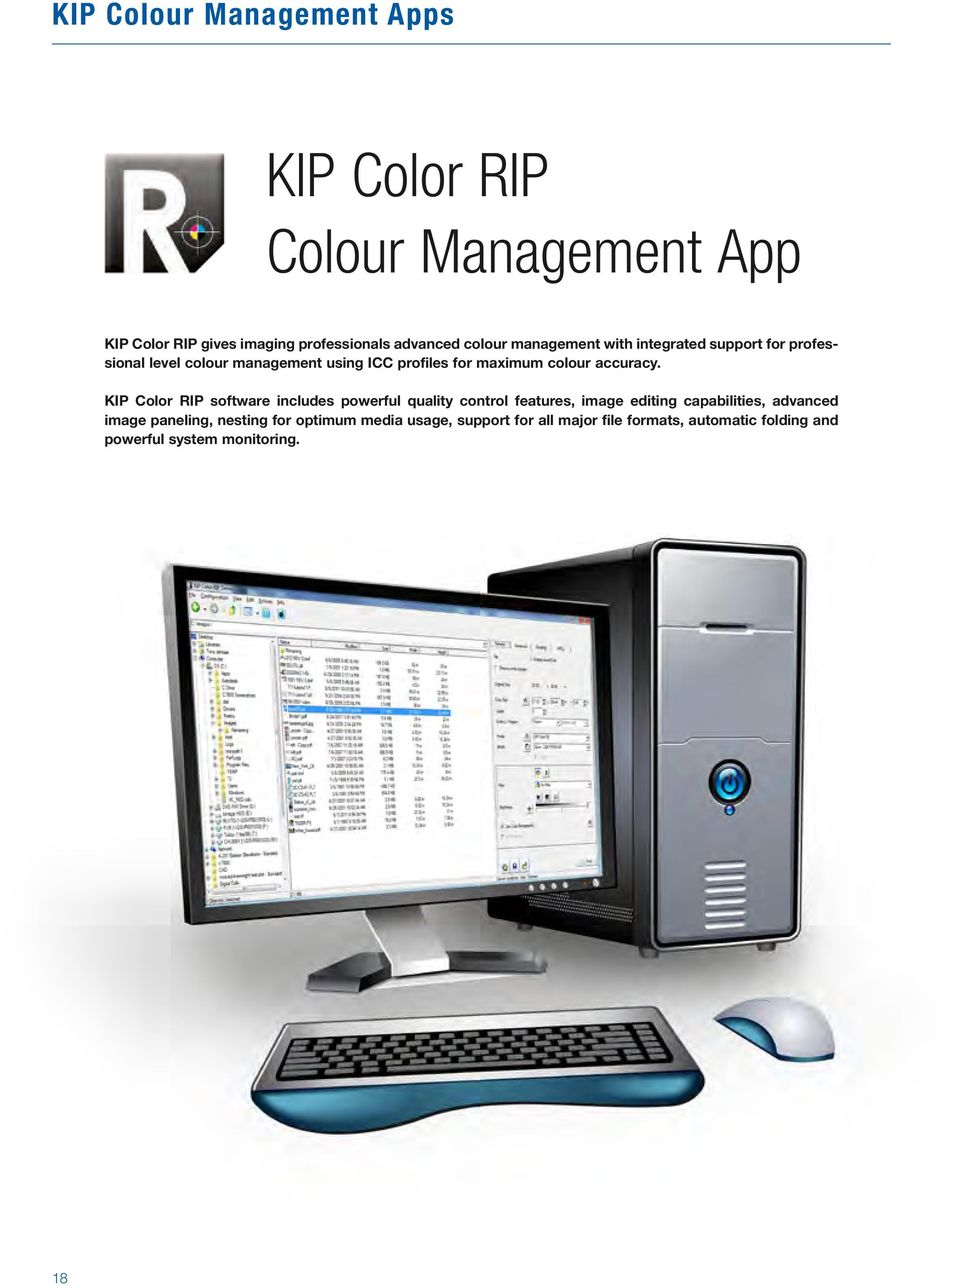 KIP Color RIP software includes powerful quality control features, image editing capabilities, advanced image